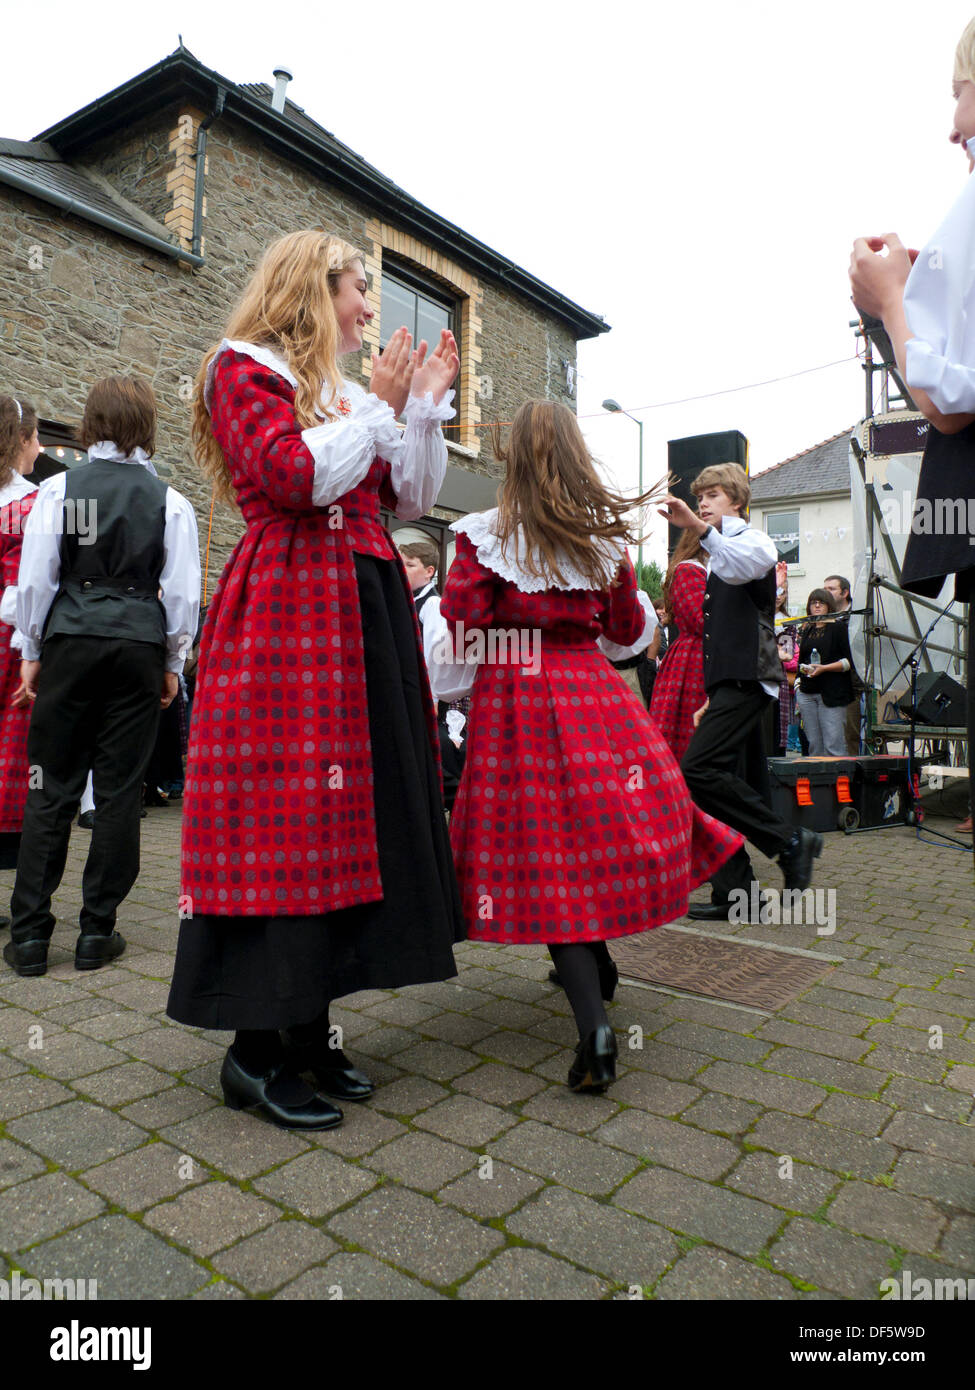 Llandovery, Wales, UK. Sat 28th Sept 2013.  Children from Menter Bro Dinefwr perform traditional Welsh folk dances Stock Photo